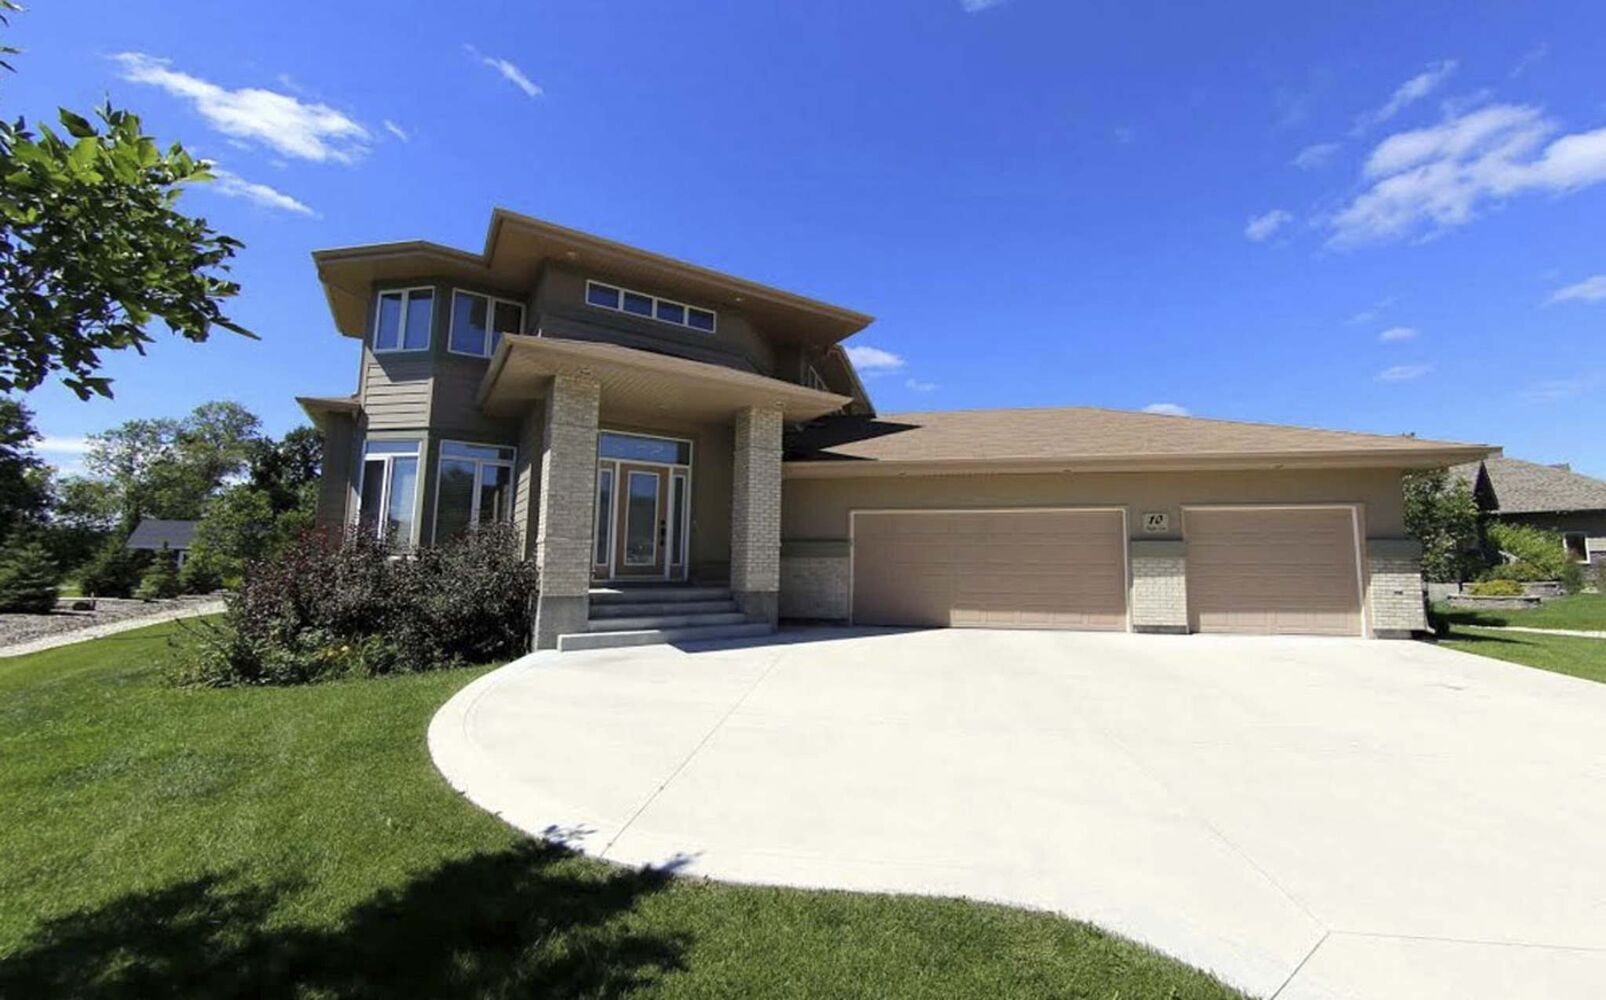 <strong>OFFERED: Assiniboine Landing</strong></p><p>ADDRESS: 10 Kuypers Lane</p><p>ASKING PRICE: $869,900</p><p>TAXES: $6,598.64</p><p>SQUARE FOOTAGE: 2,750</p><p>LOT SIZE: .5 acre lot</p><p>BEDROOMS: 5</p><p>BATHROOMS: 3.5</p></p>